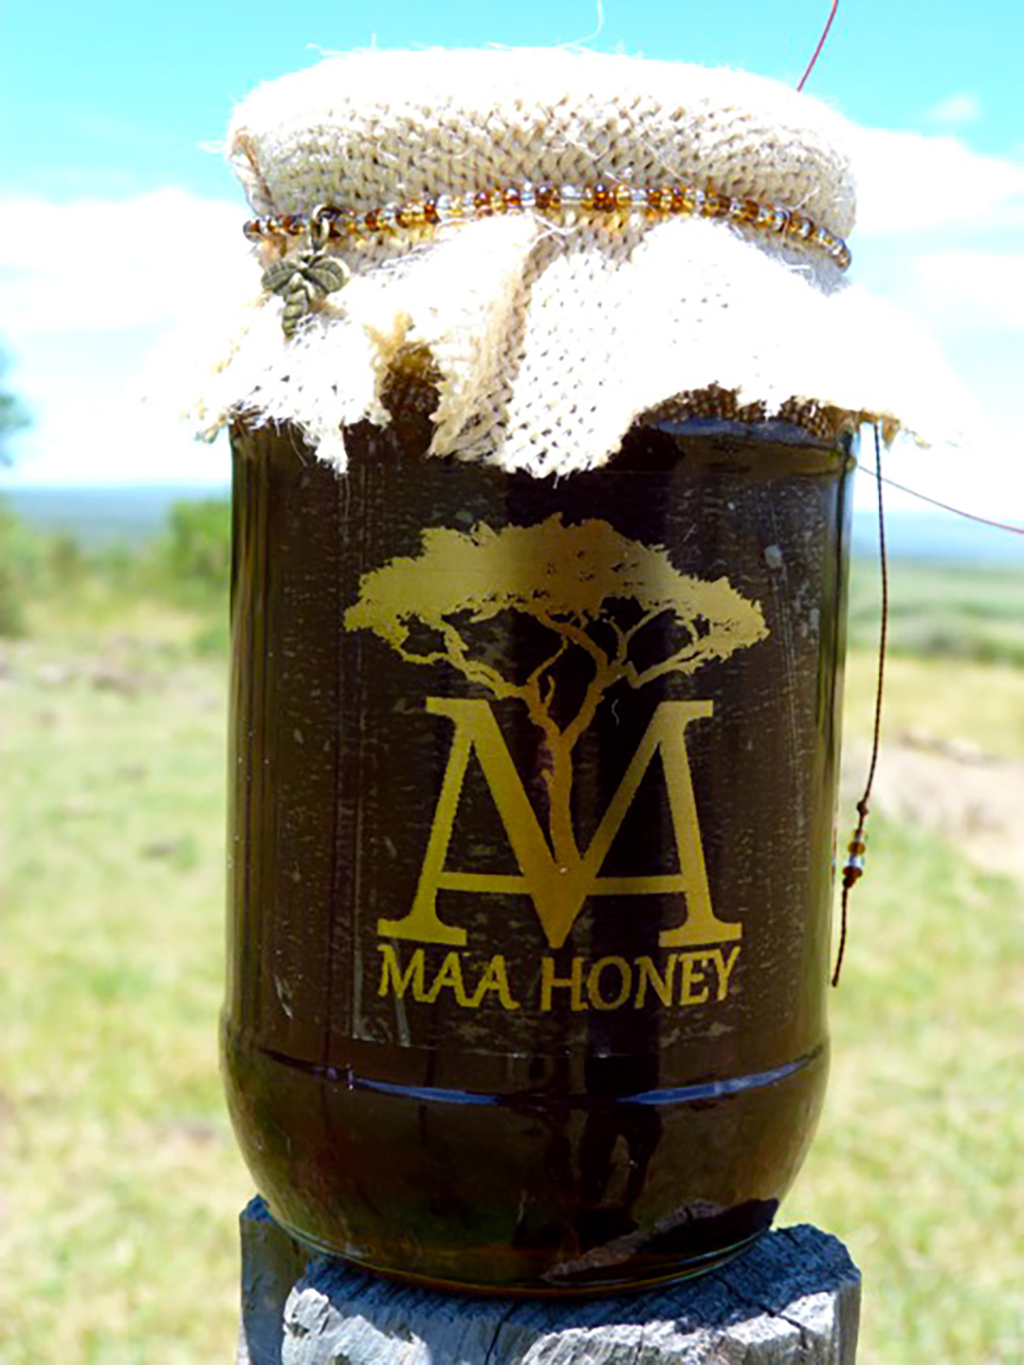 A jar of Maa Honey